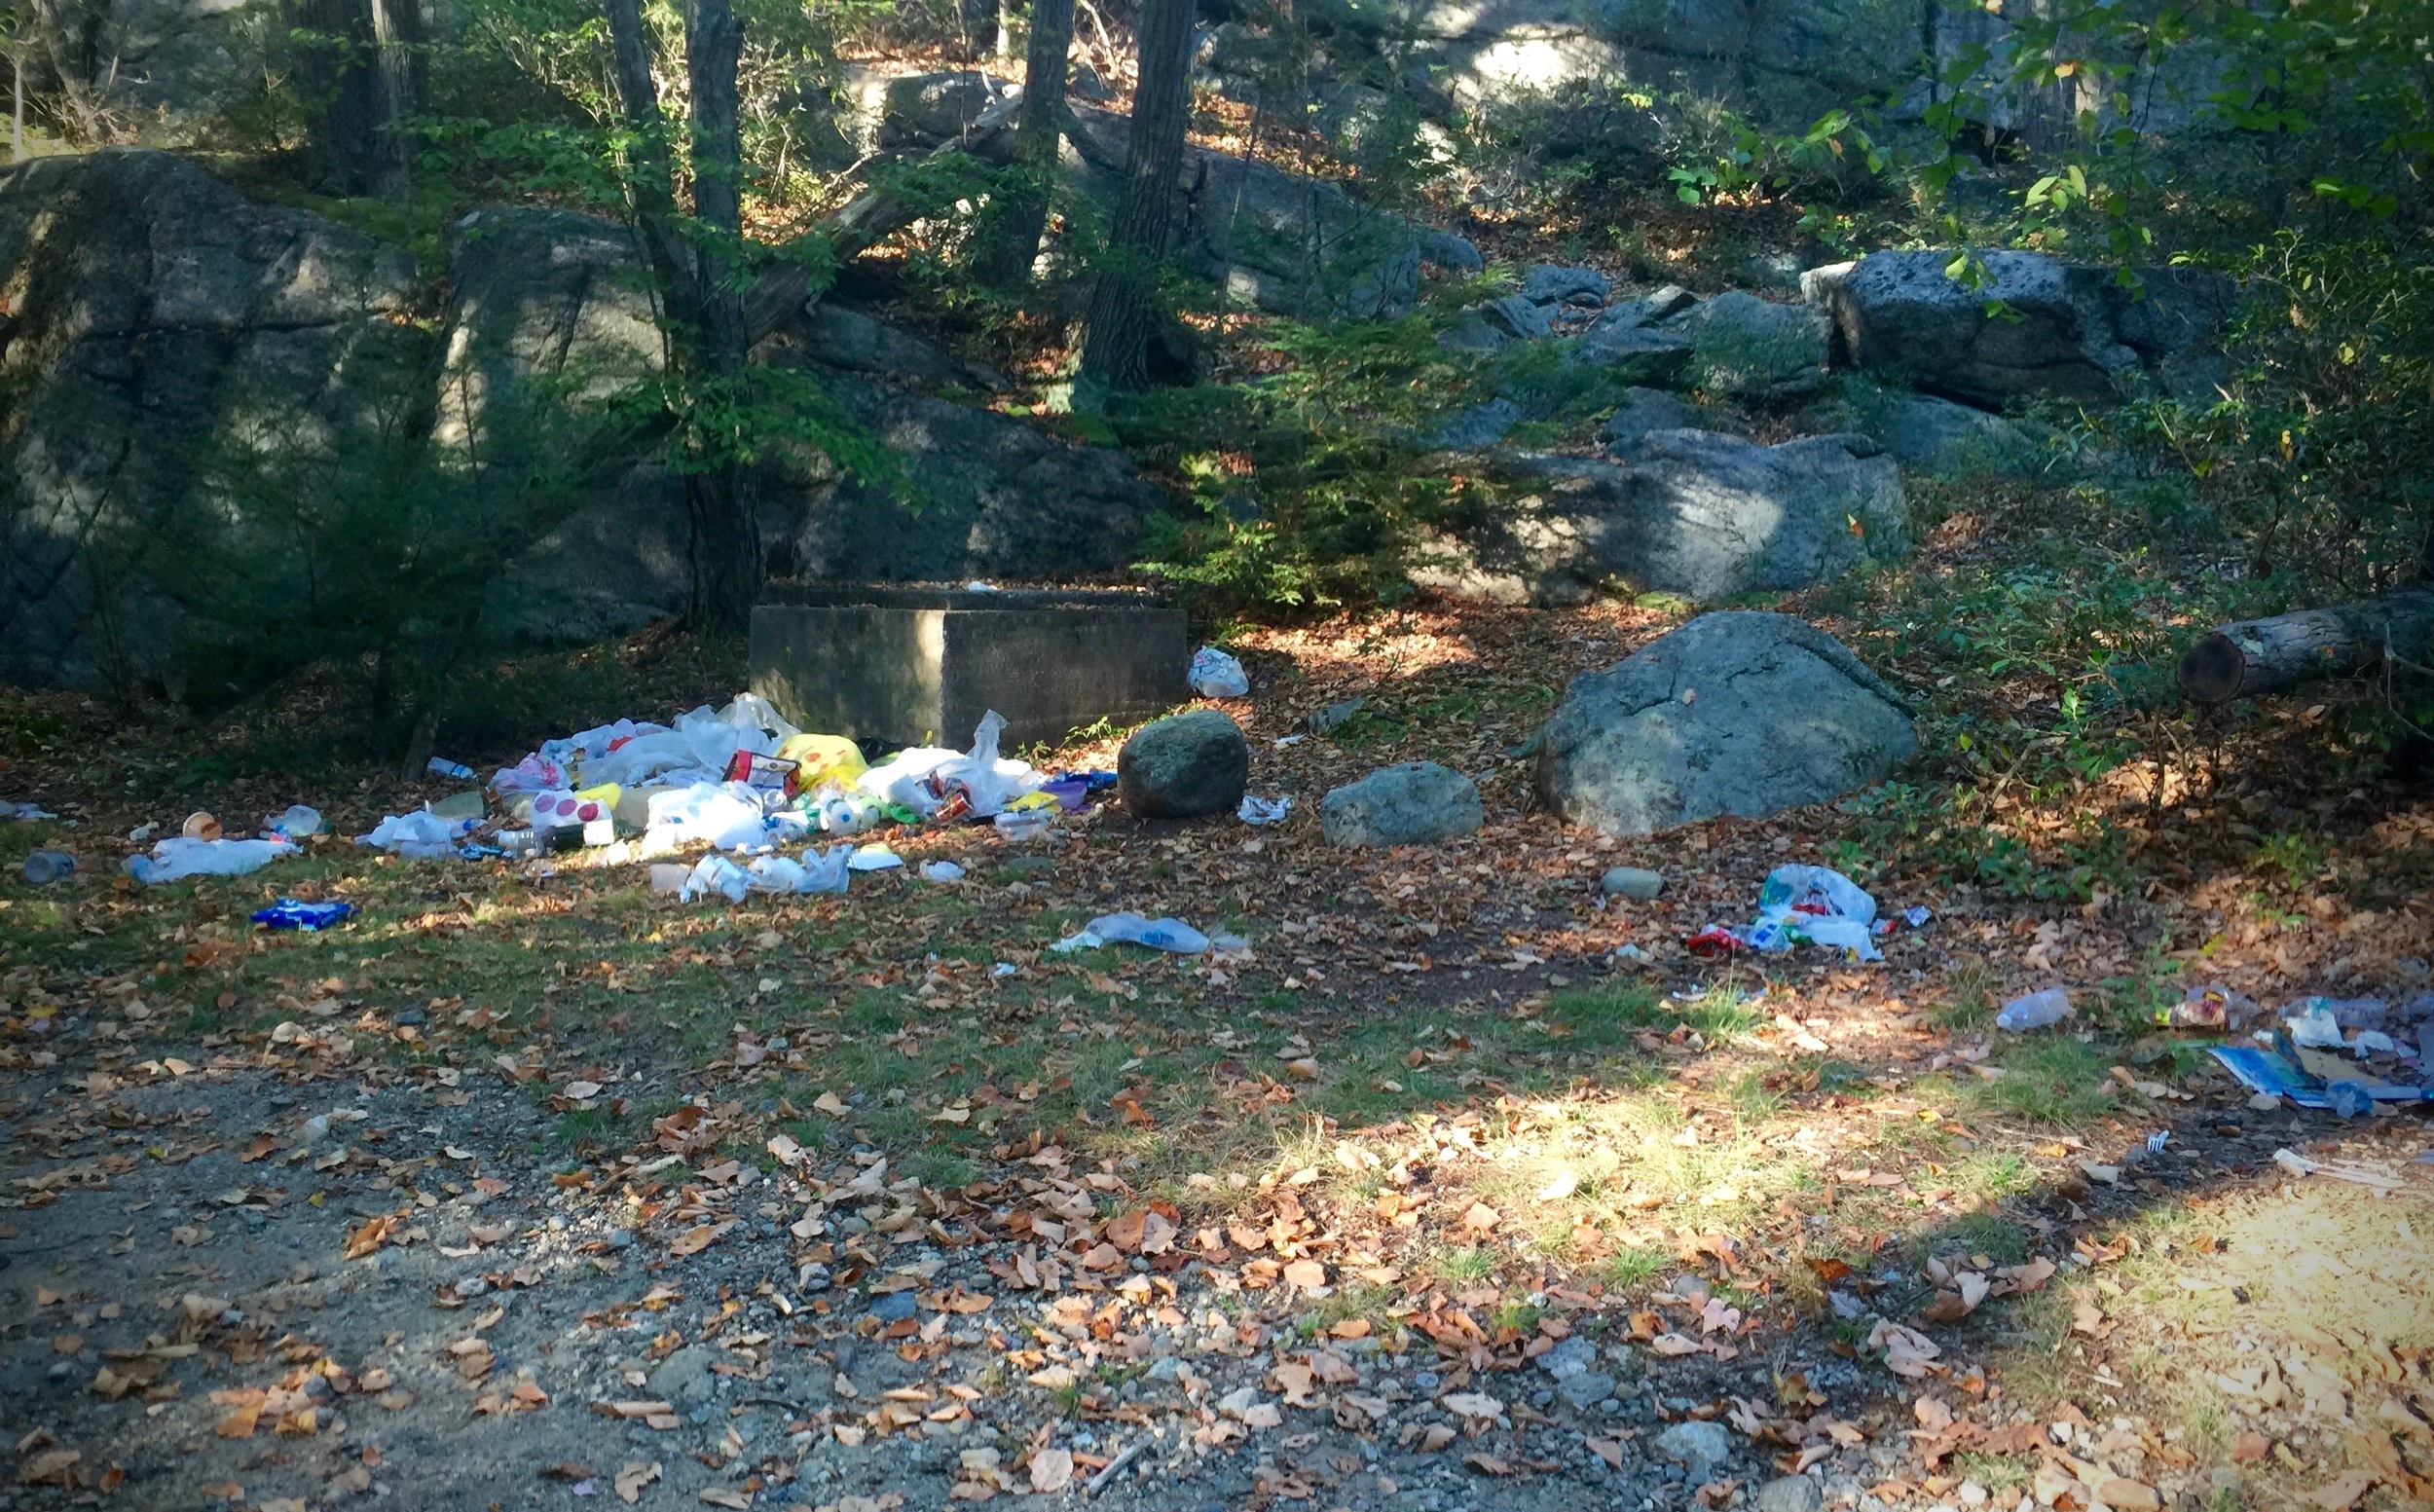 Garbage found near Pine Meadow Lake in Harriman State Park, New York. This accumulated because one person left trash behind and then others followed.